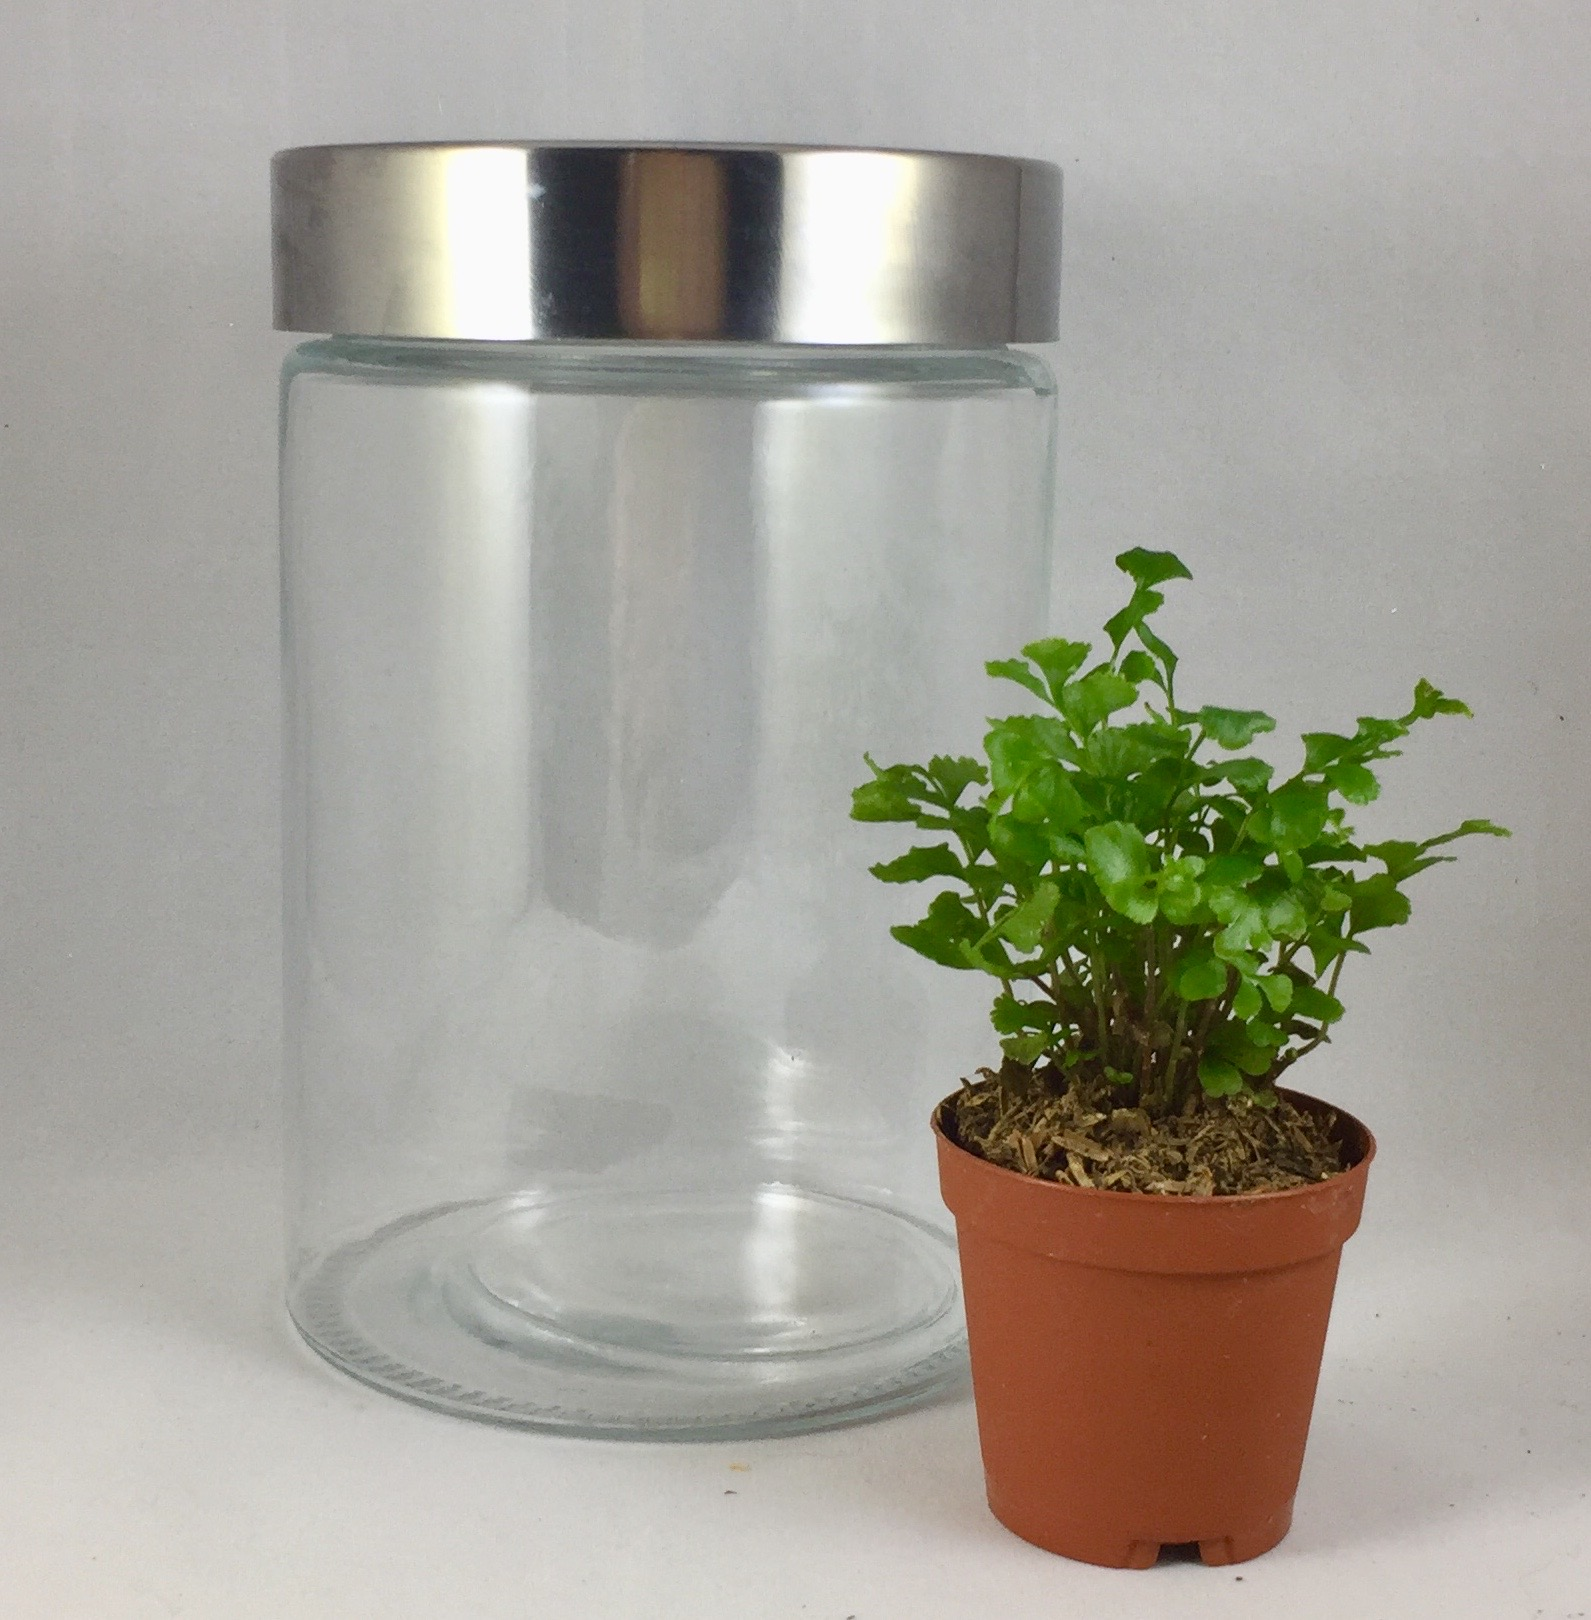 Small Upright Terrarium$15 per student - Includes 6 1/2 inch upright jar, one plant, base sands, dirt, decorations and tote bag.